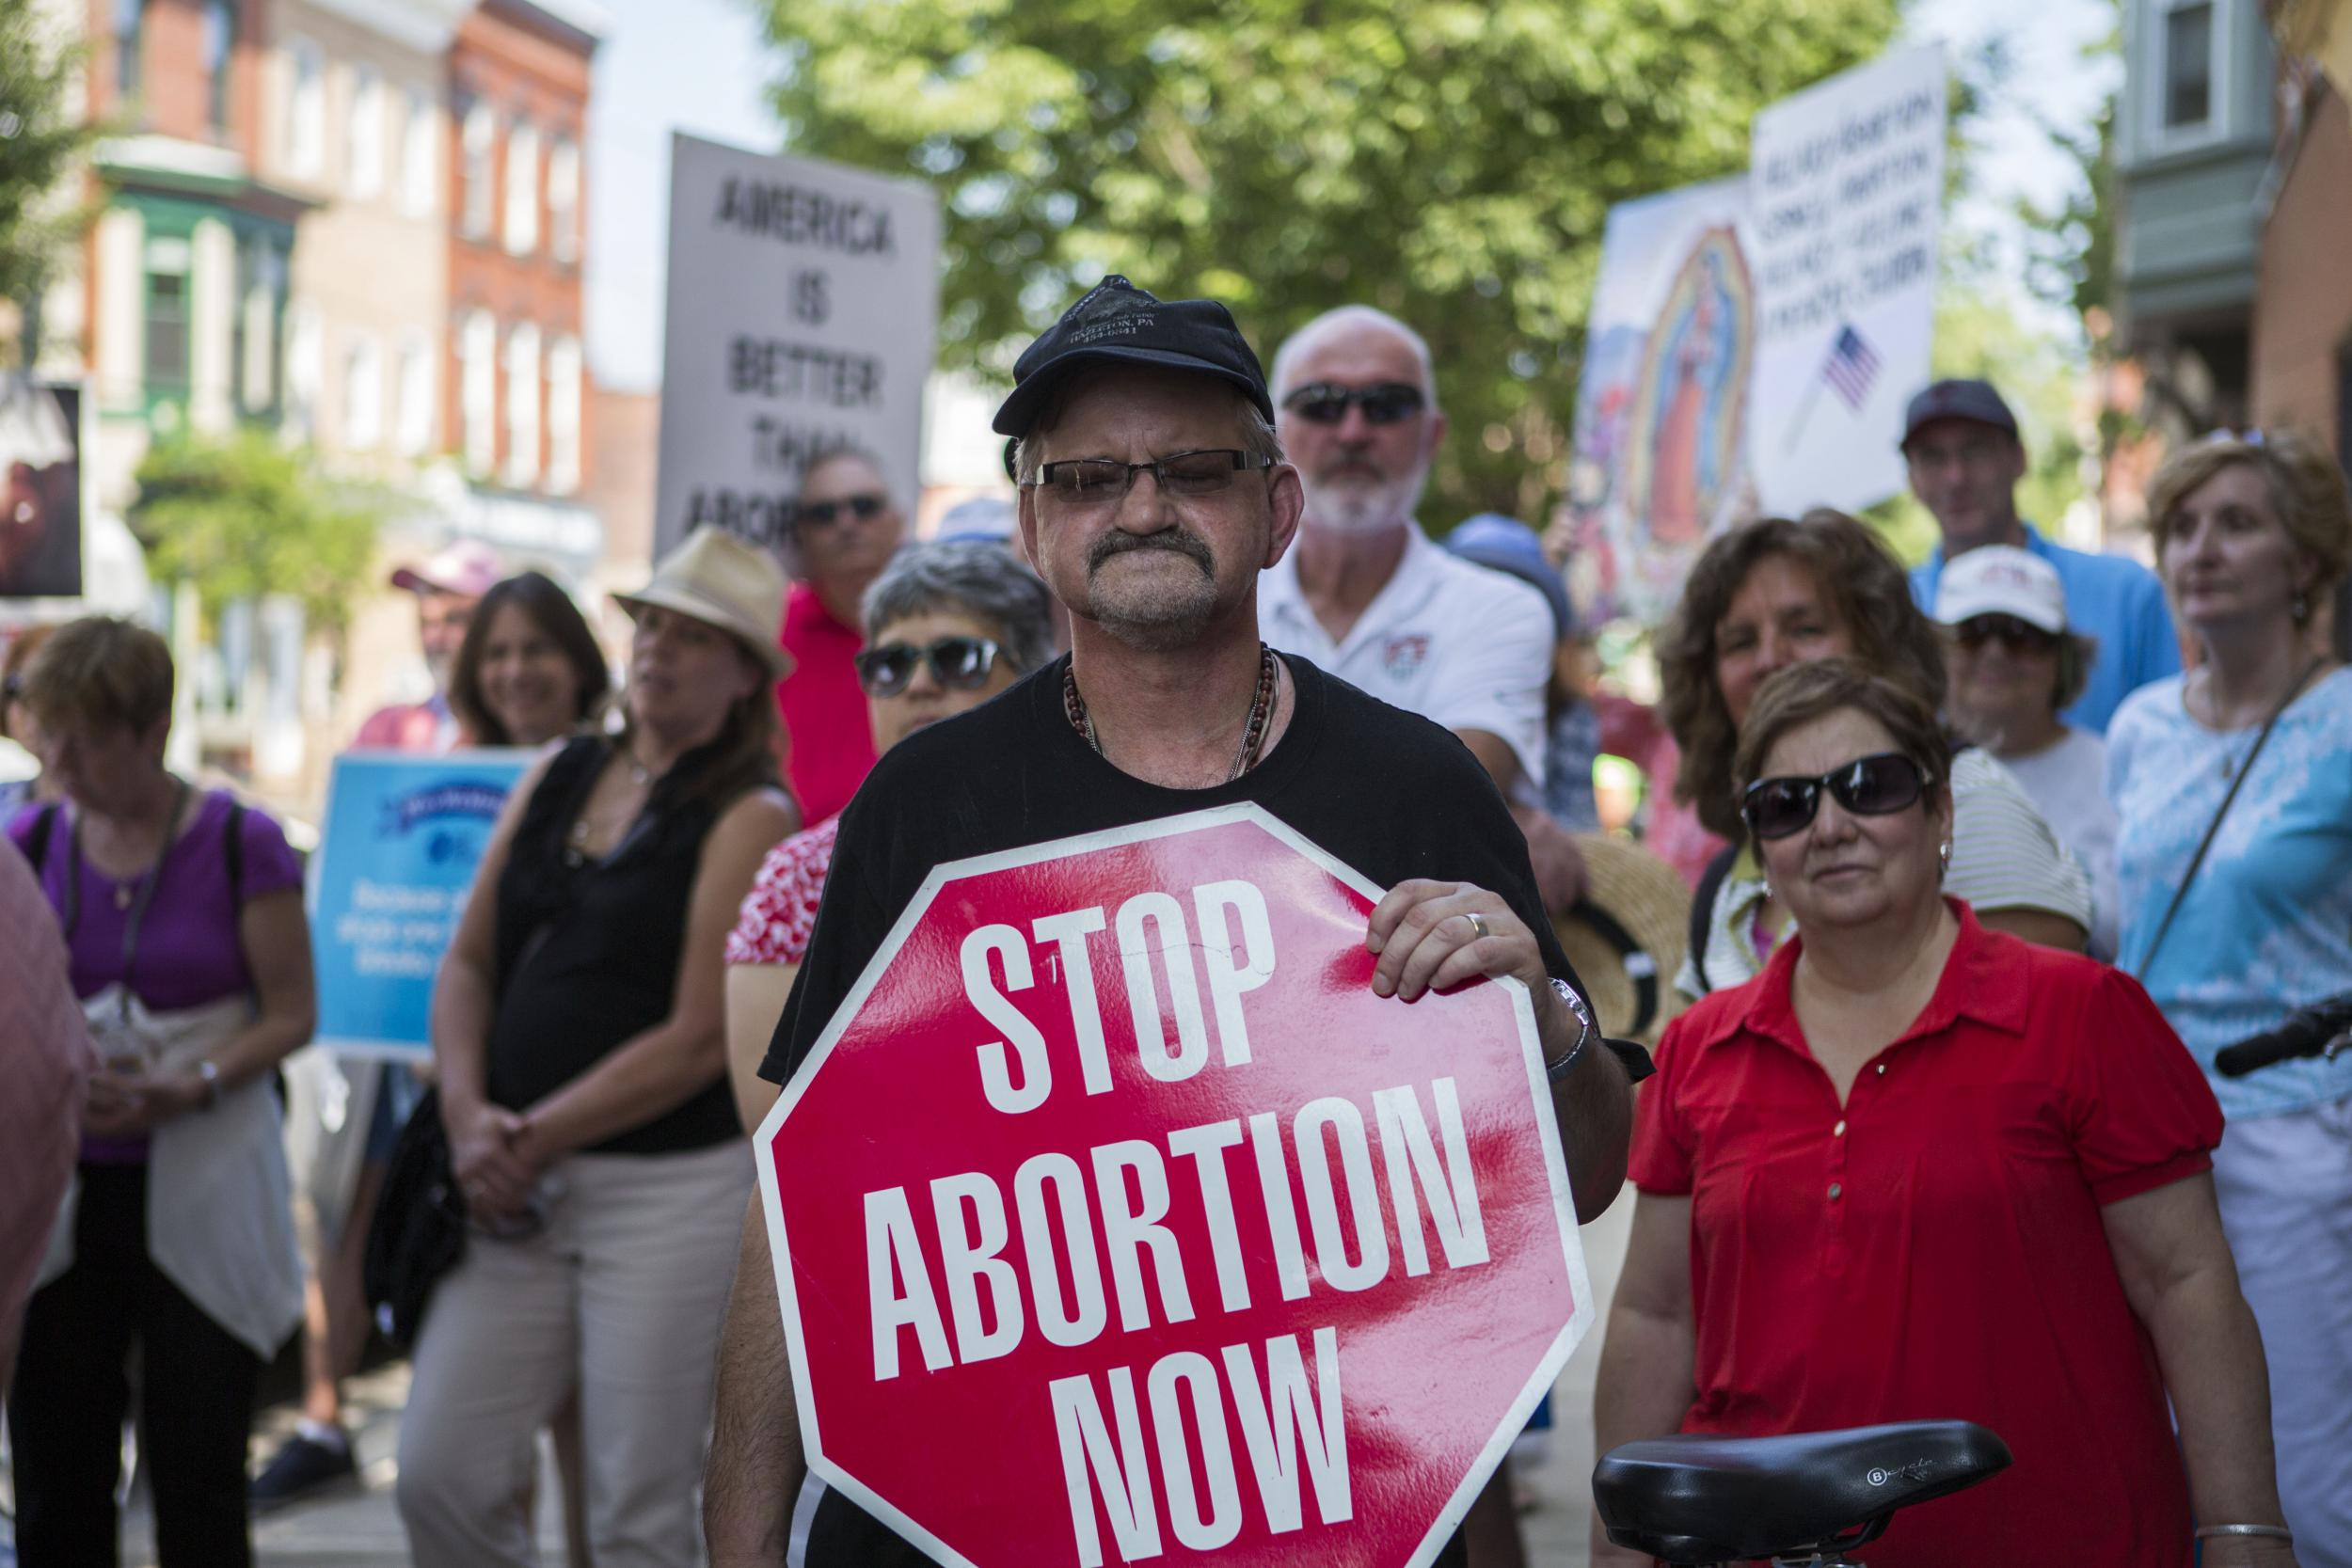 Threats of violence against US abortion clinics almost doubled in 2017, industry group says